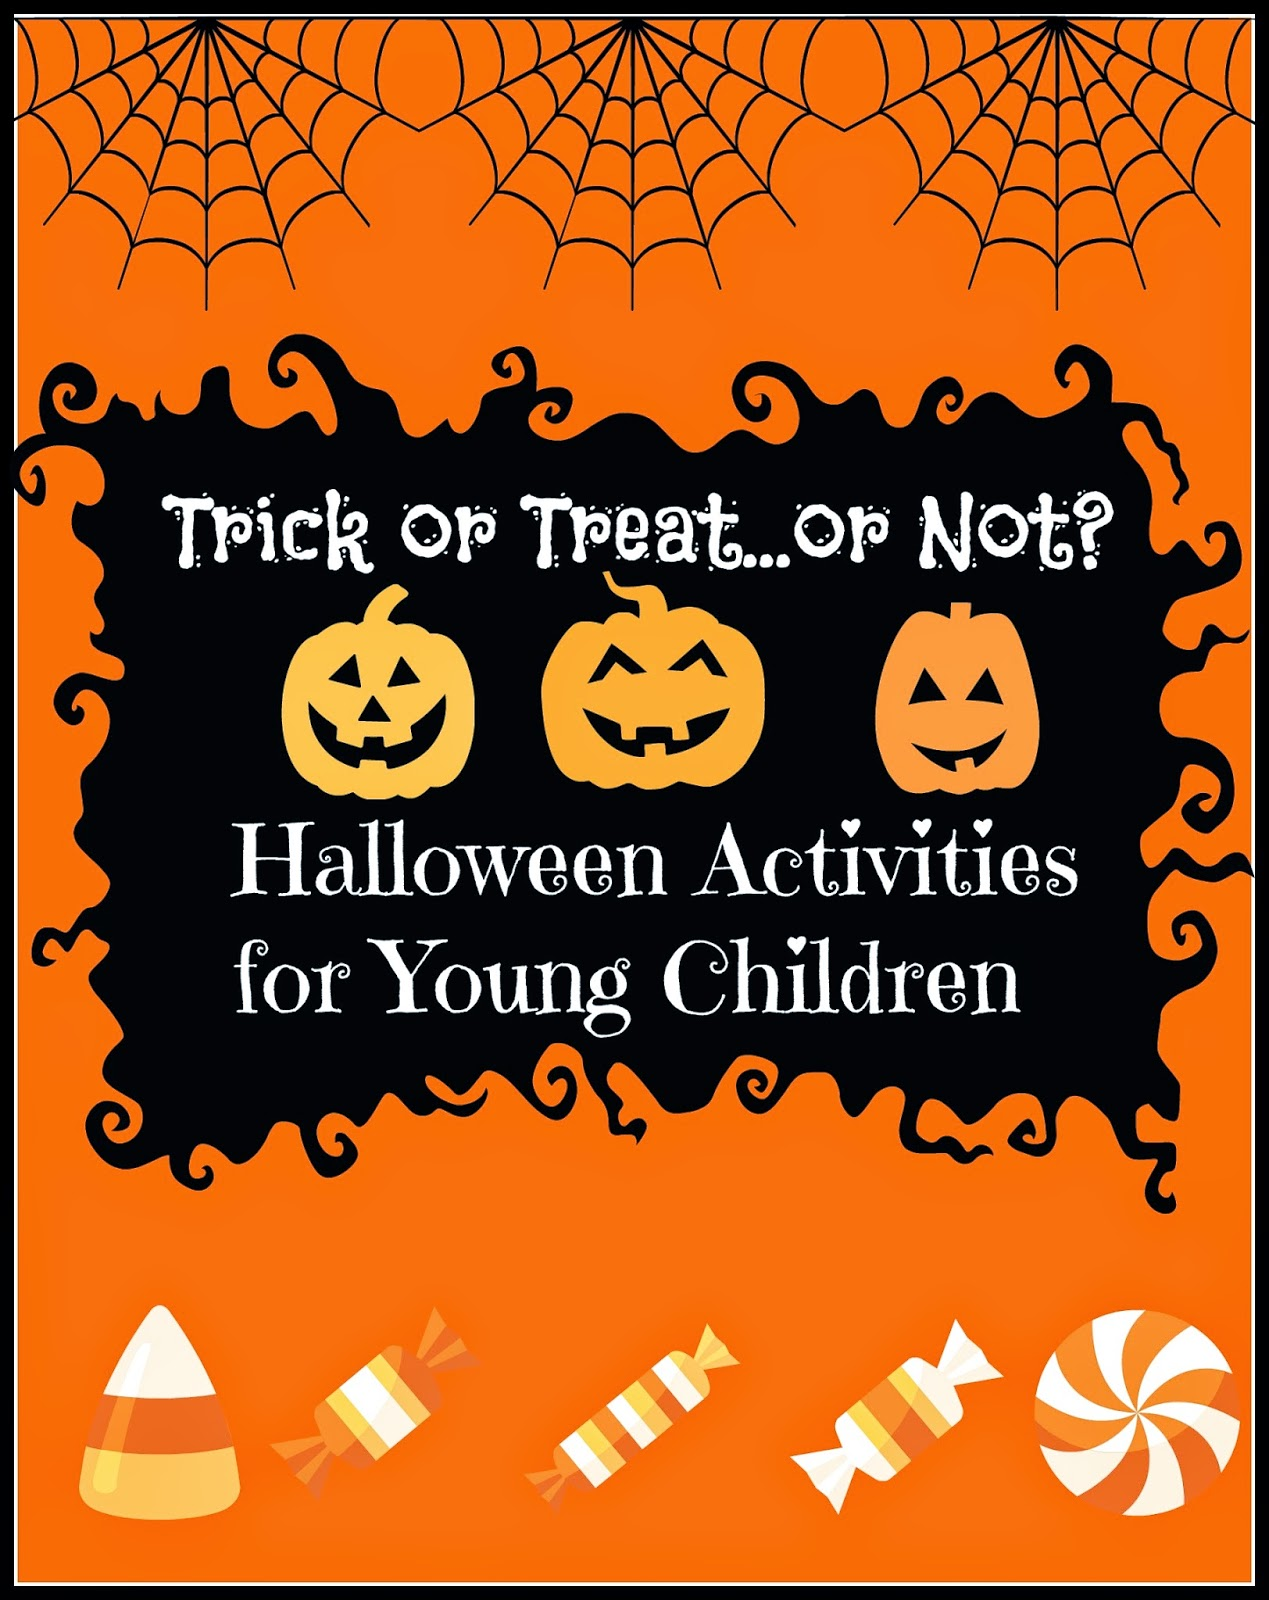 http://b-is4.blogspot.com/2014/10/halloween-activities-for-young-children.html